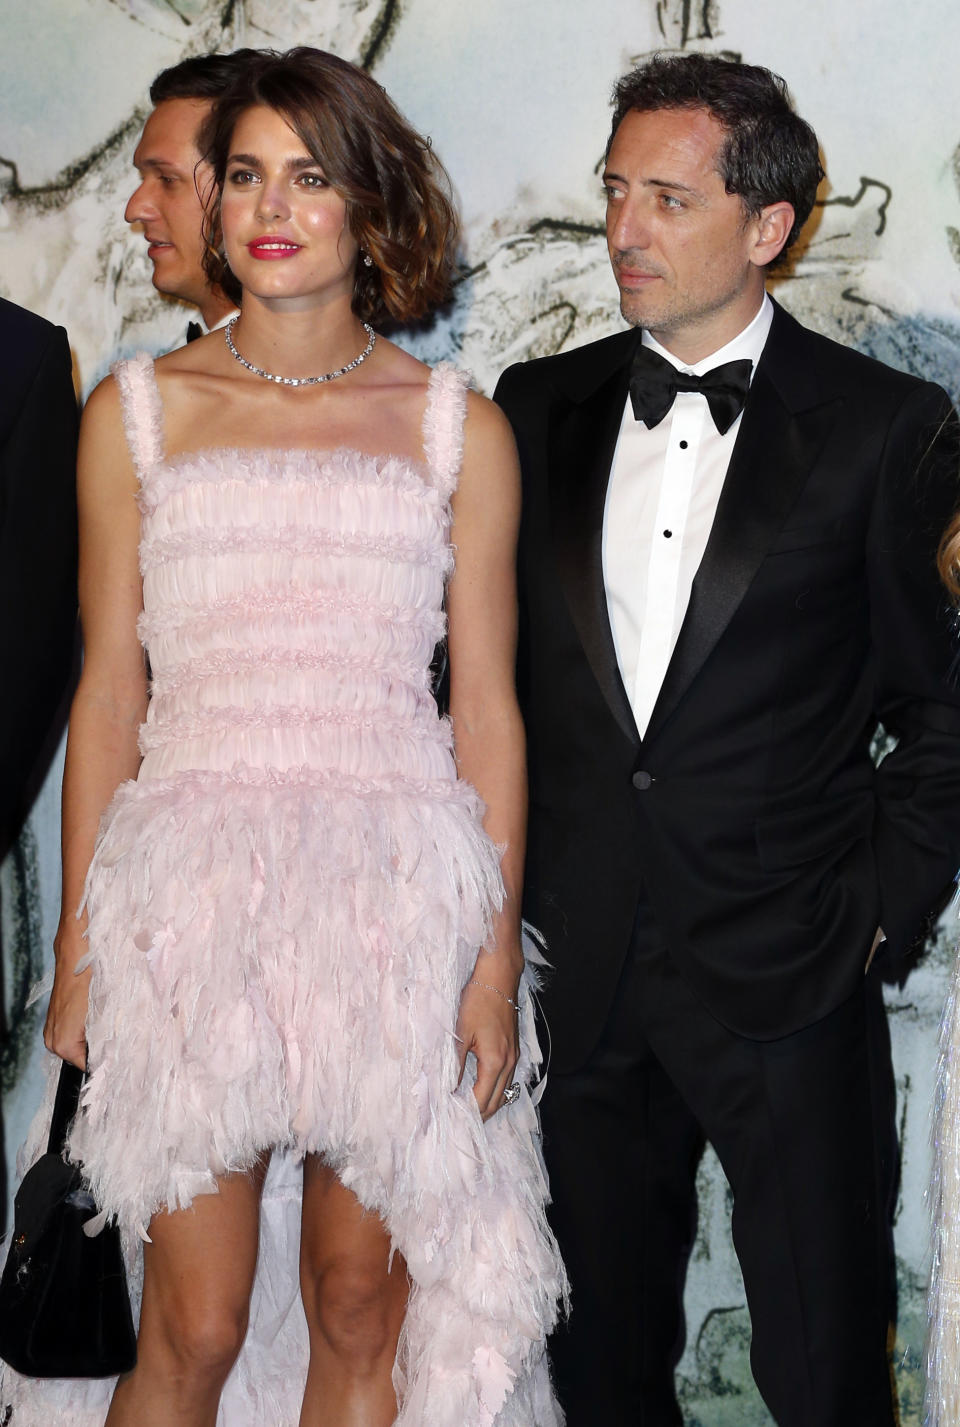 """Charlotte Casiraghi and French humorist Gad Elmaleh poses prior to the annual Rose Ball at the Monte-Carlo Sporting Club in Monaco, on March 23, 2013. The Rose Ball is one of the major charity events in Monaco. Created in 1954, it benefits the Princess Grace Foundation. Directed by German Couturier Karl Lagerfeld, this year's event named """"La Belle Epoque"""" (Beautiful Era), was celebrated in honor of the Societe des bains de mer (SBM),  a prominent player in Monaco's tourism industry. AFP PHOTO /POOL/ VALERY HACHE        (Photo credit should read VALERY HACHE/AFP via Getty Images)"""